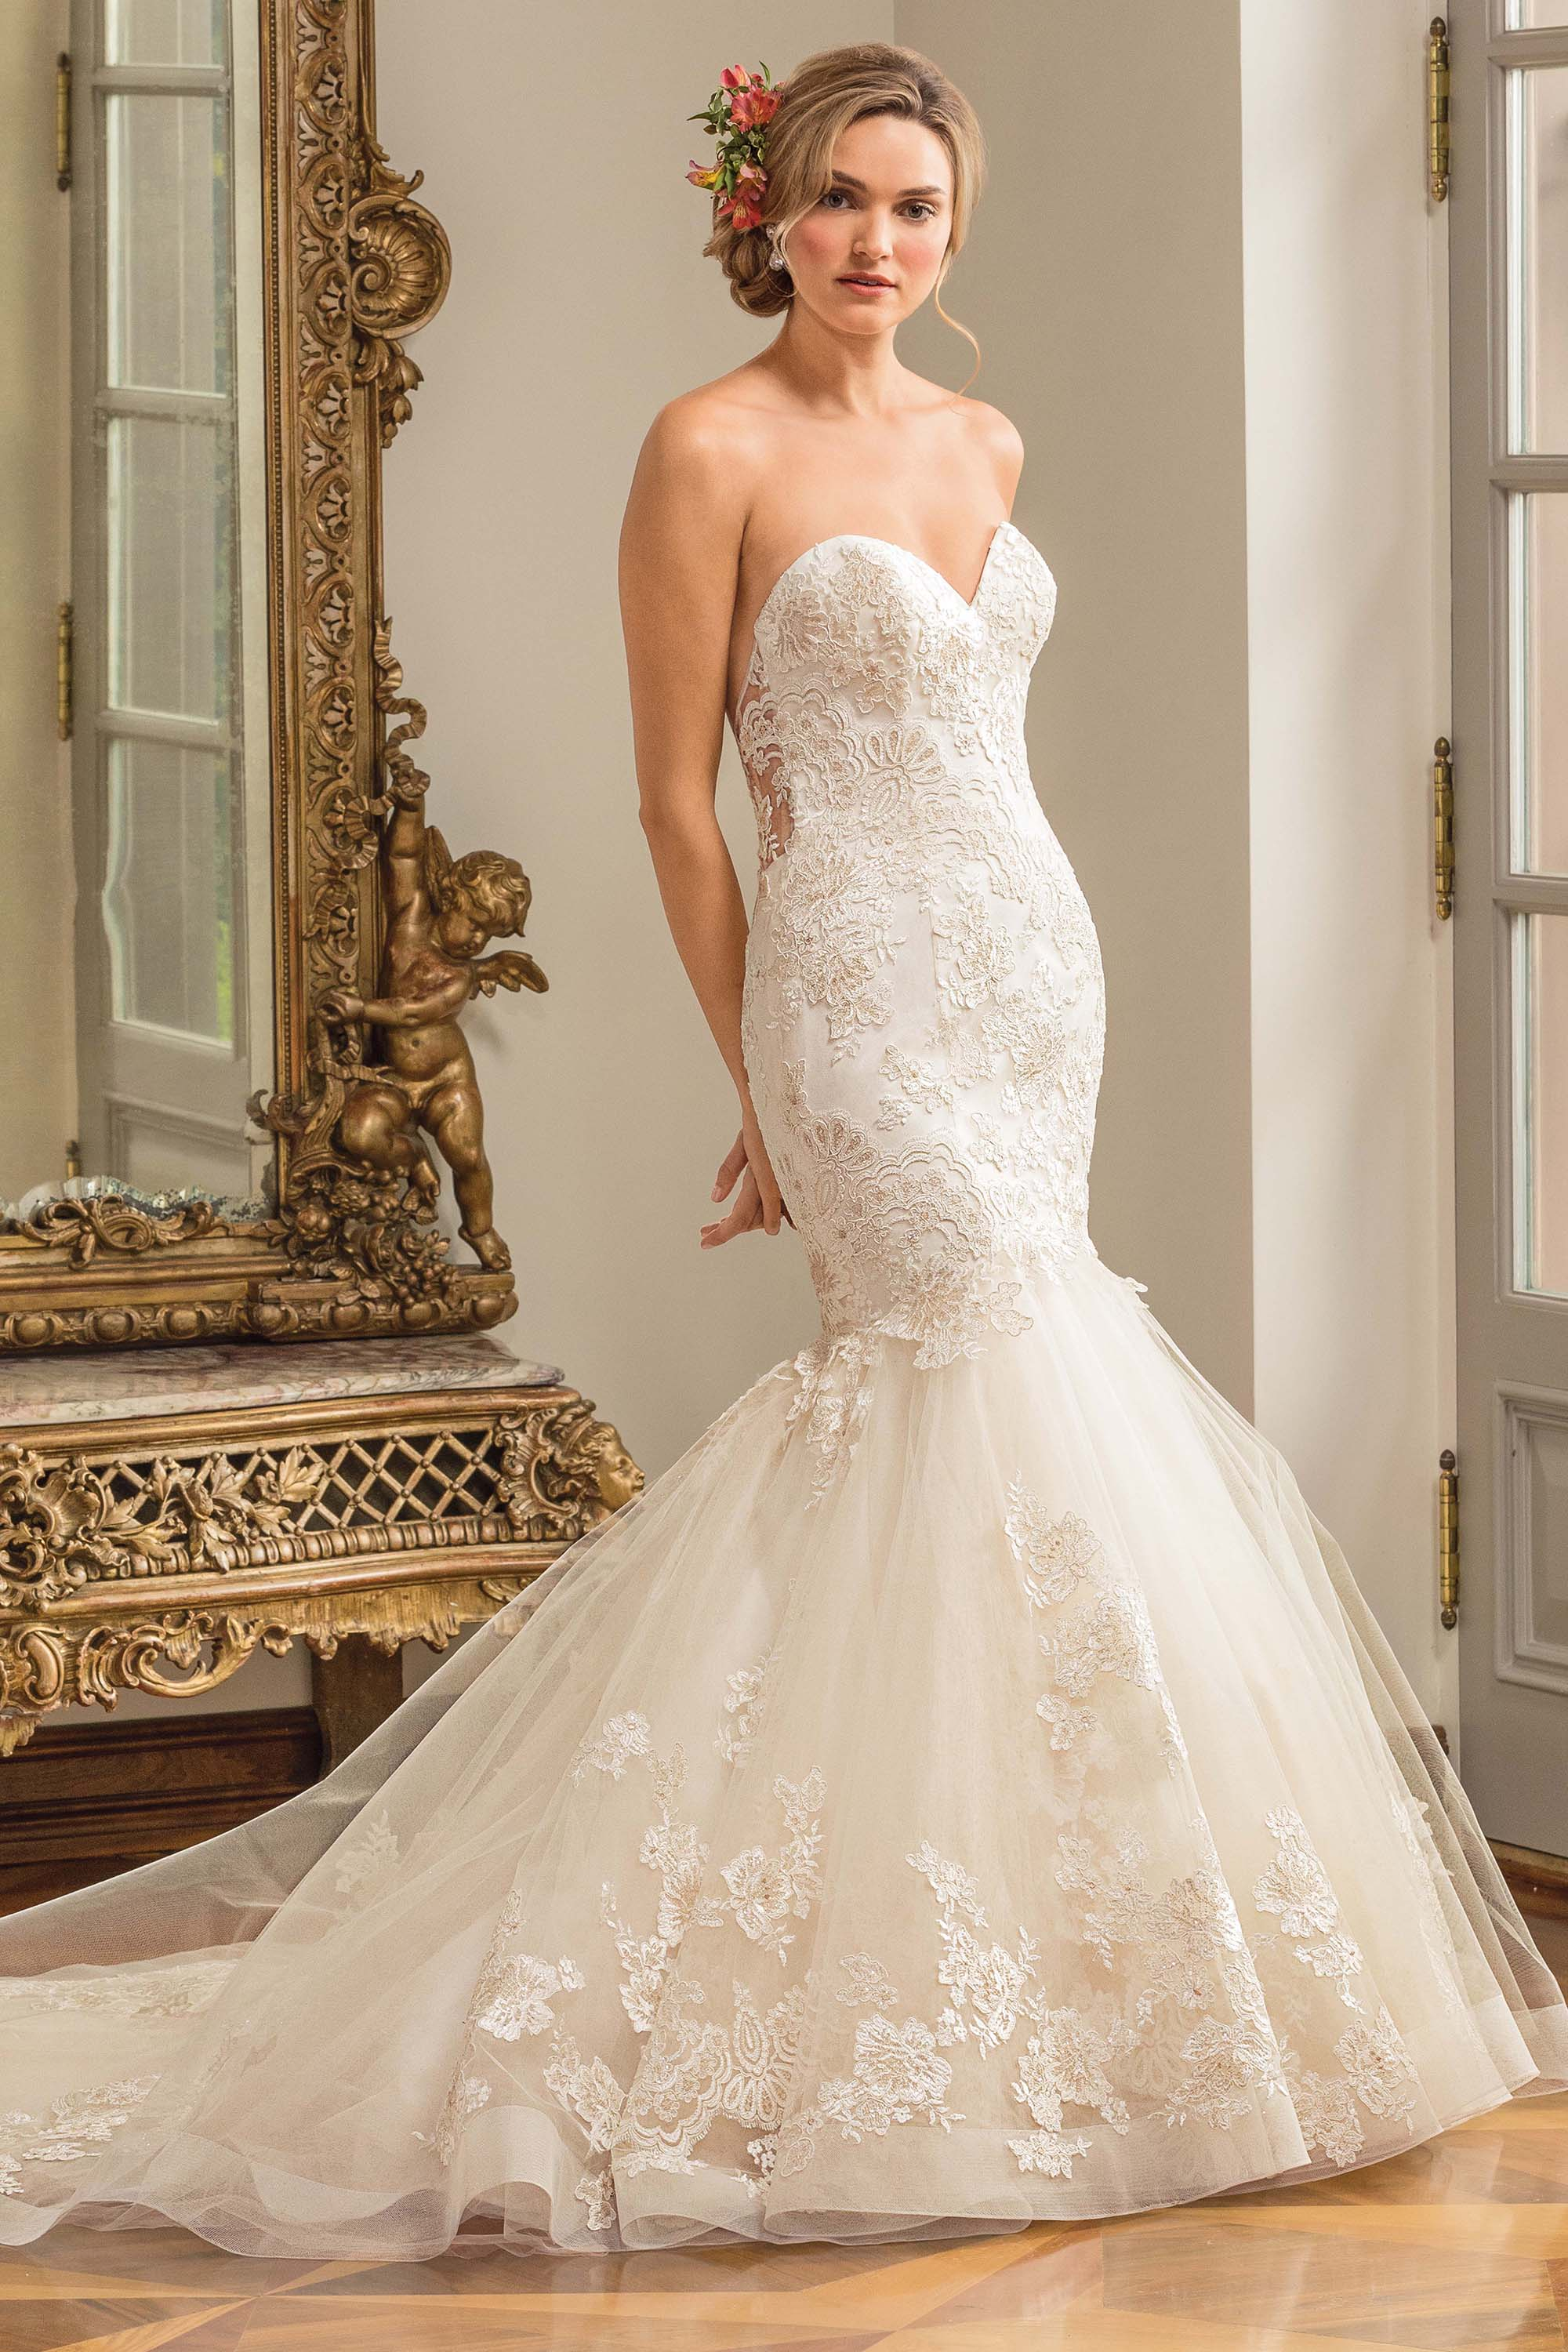 Mermaid Style Wedding Dress.Sophisticated Mermaid Wedding Dress Style 2333 Marni Blog